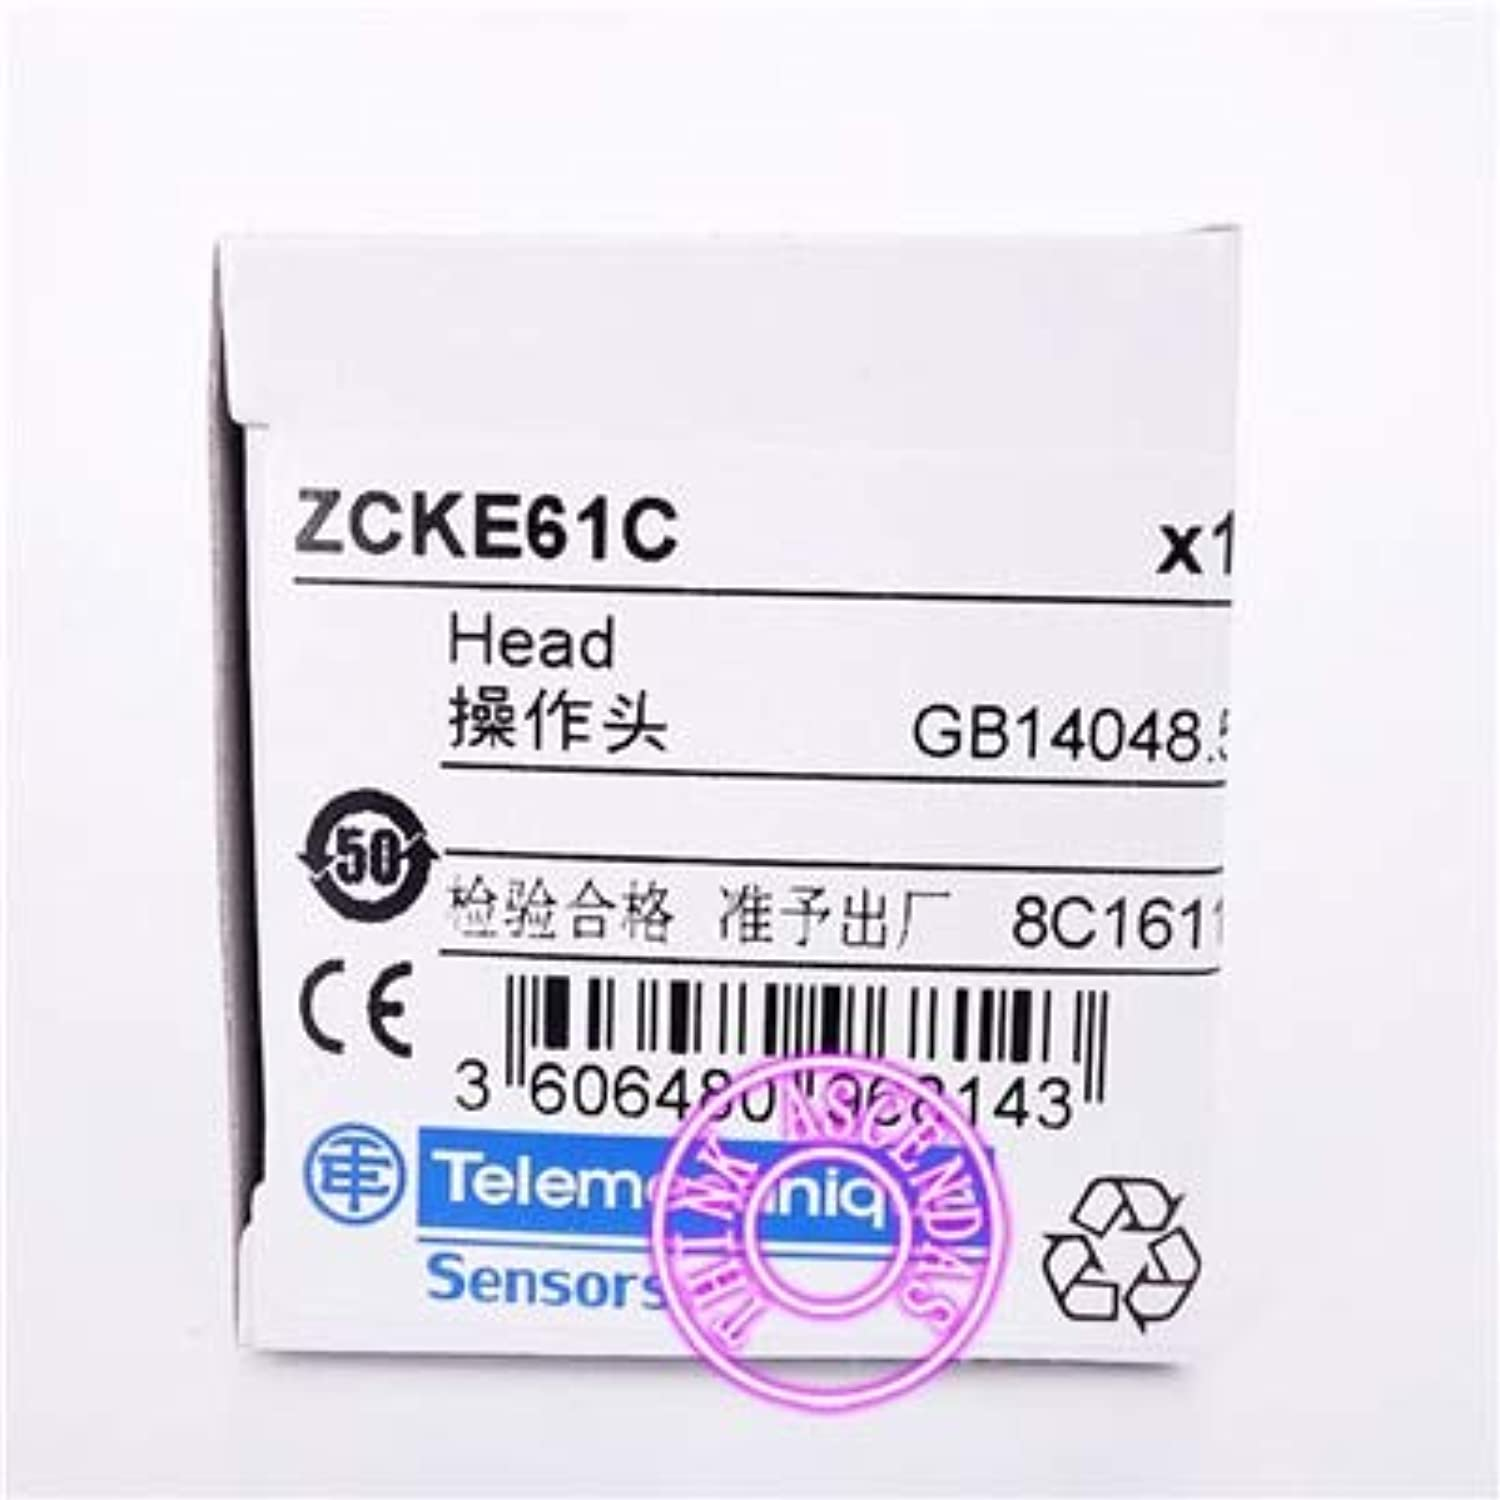 Limit Switch Operating Head Original New ZCKE61C ZCKE61C   ZCKE62C ZCKE62C   ZCKE63C ZCKE63C   ZCKE64C ZCKE64C  (color  ZCKE61C)